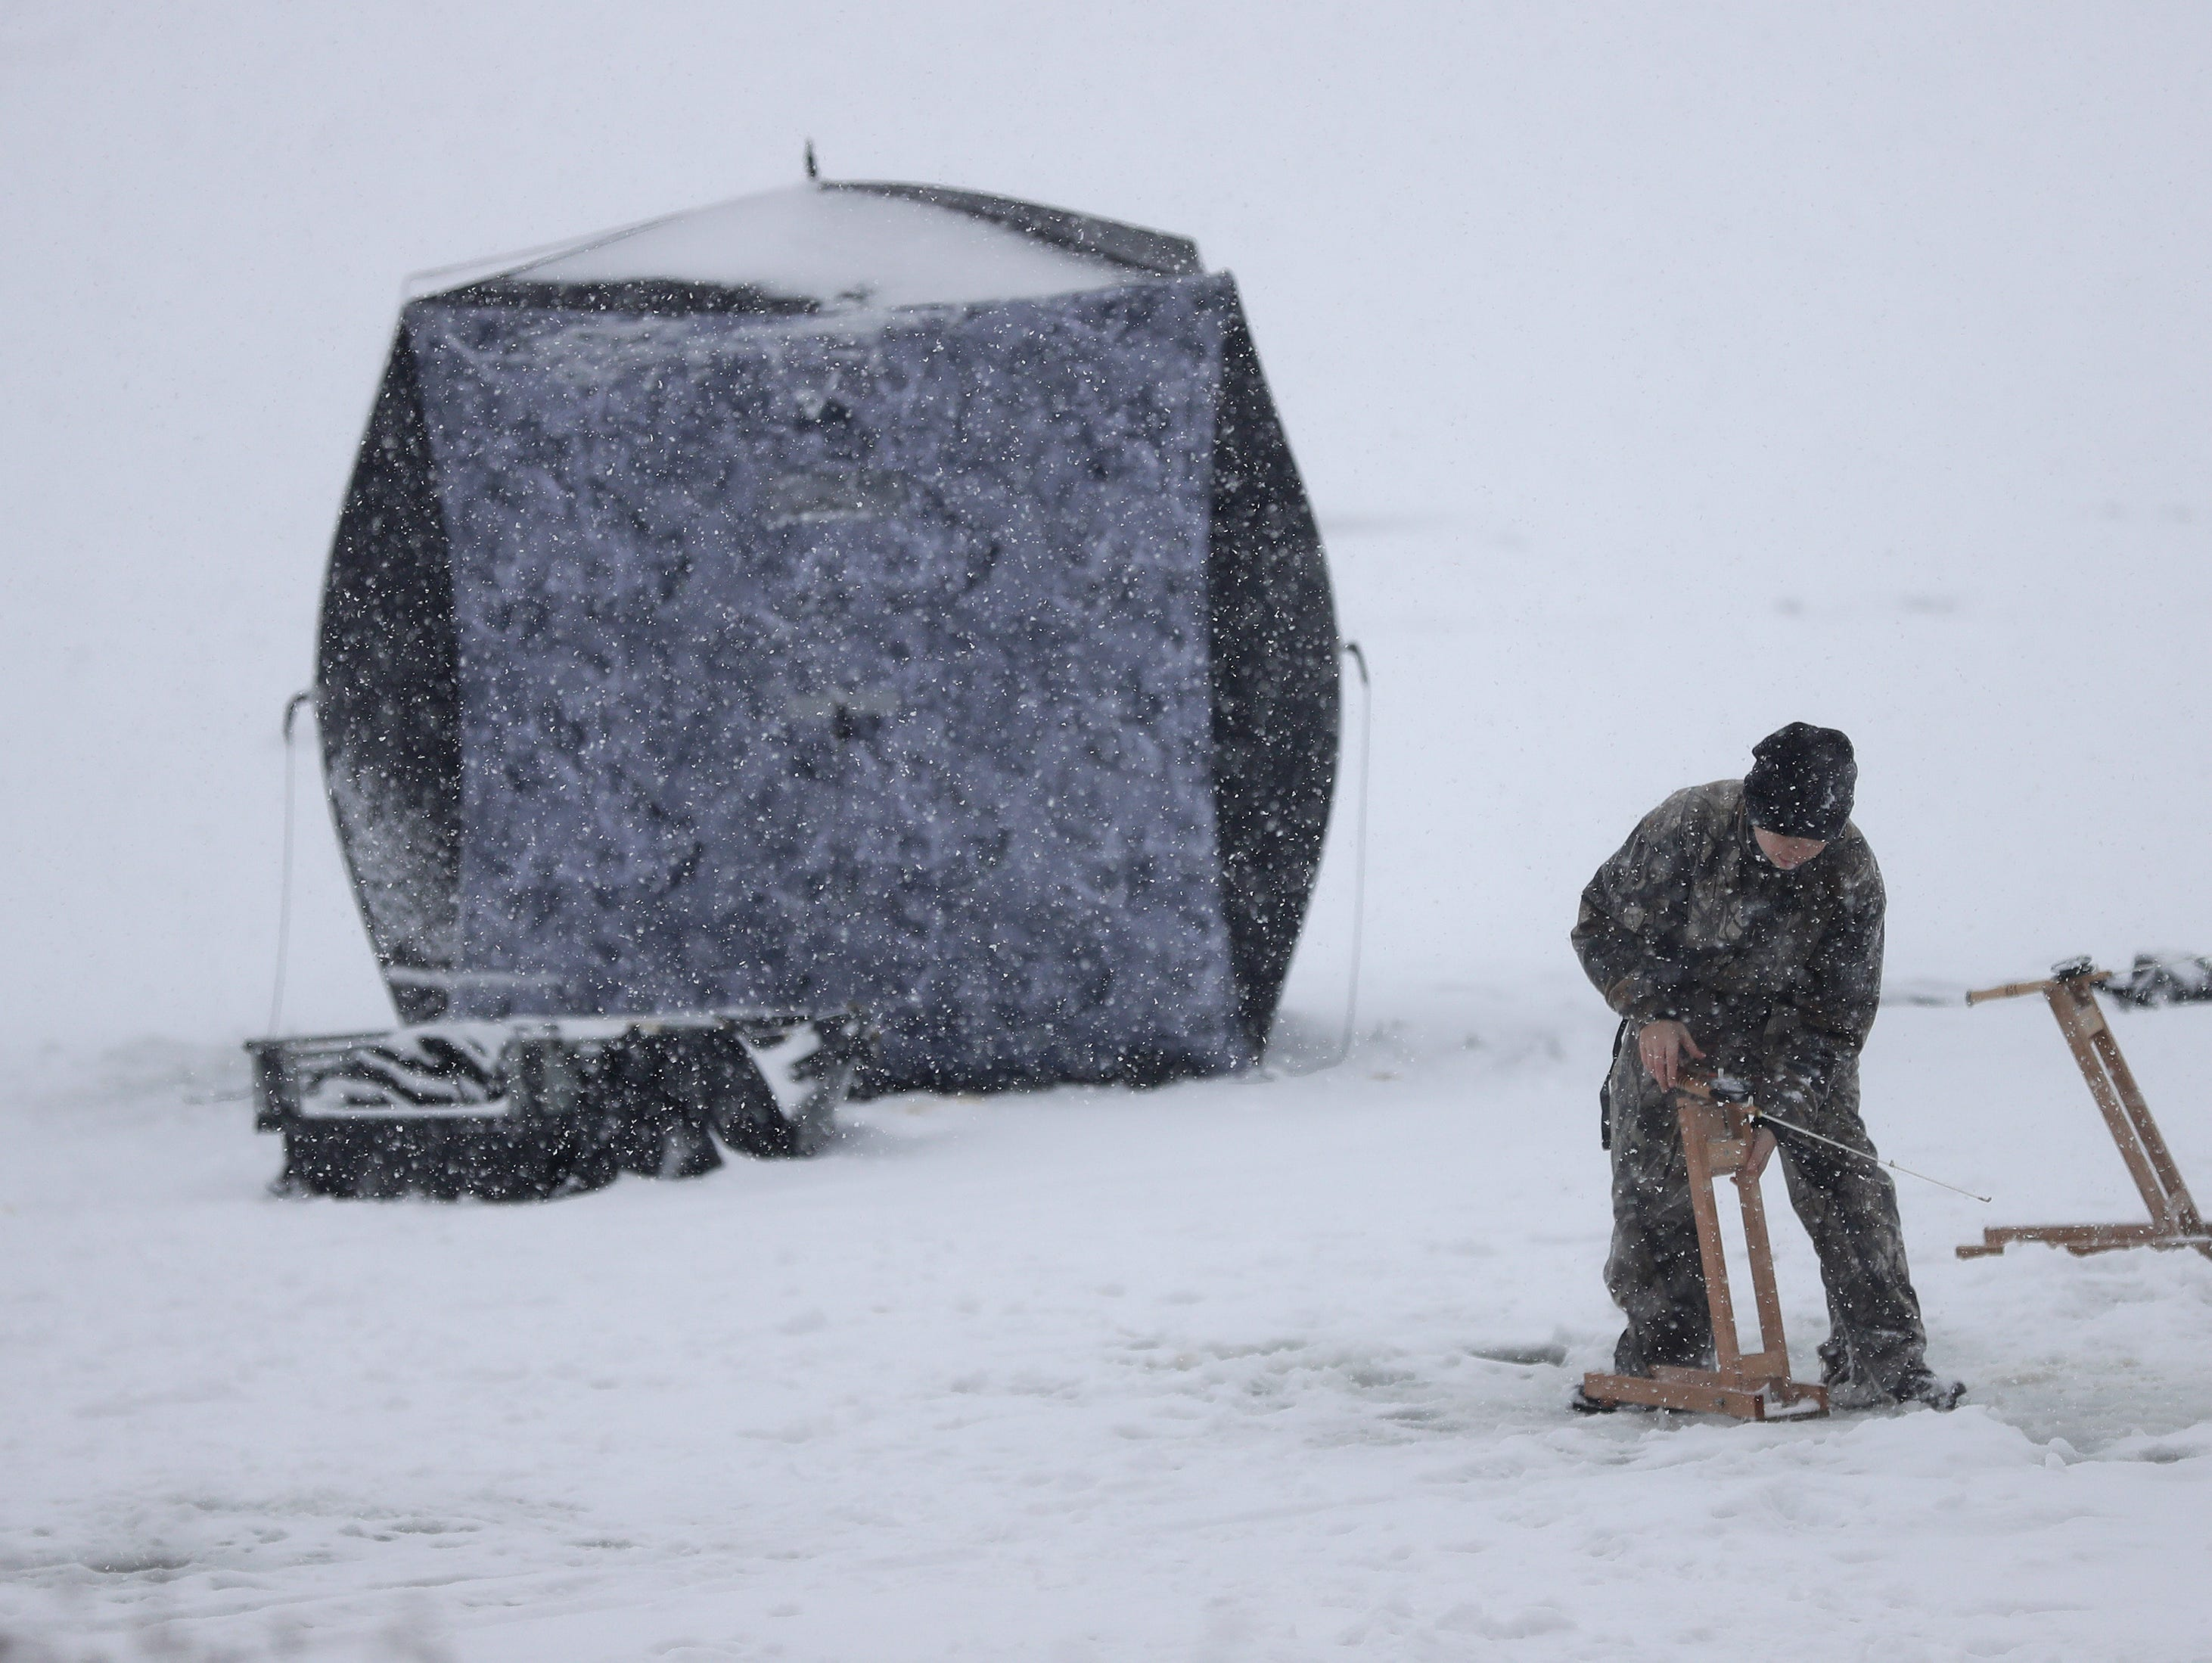 Isiah Schuh, 13, of Little Chute sets up a tip down while ice fishing with his father during a snow storm on Little Lake Butte des Morts Monday, December 31, 2018, in Fox Crossings, Wis. Dan Powers/USA TODAY NETWORK-Wisconsin